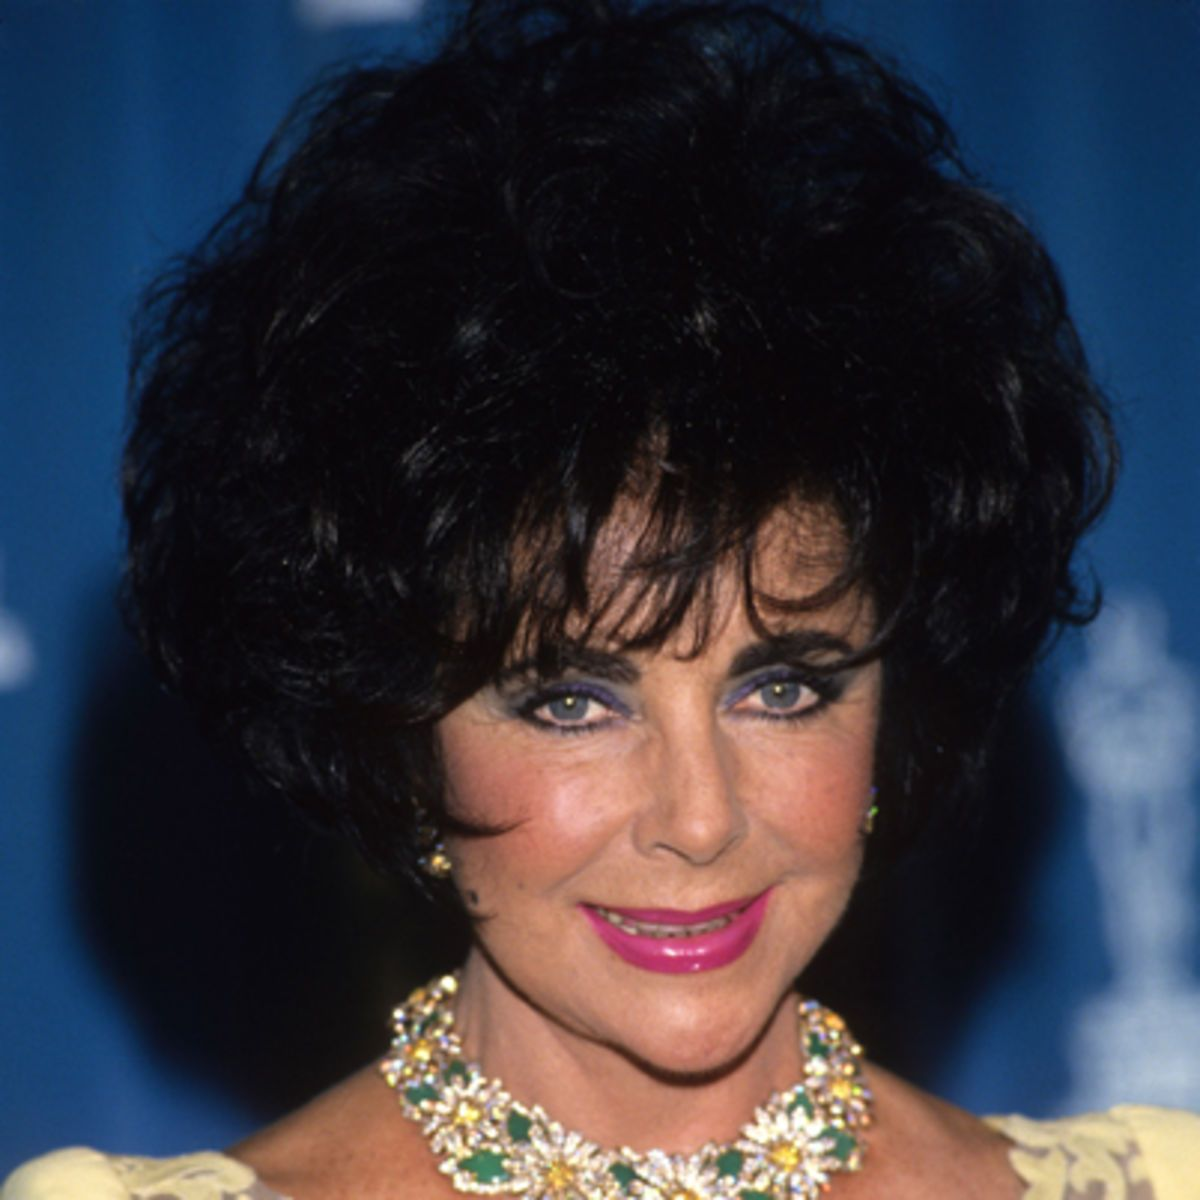 Academy Award-winning actress Elizabeth Taylor was known her many ...